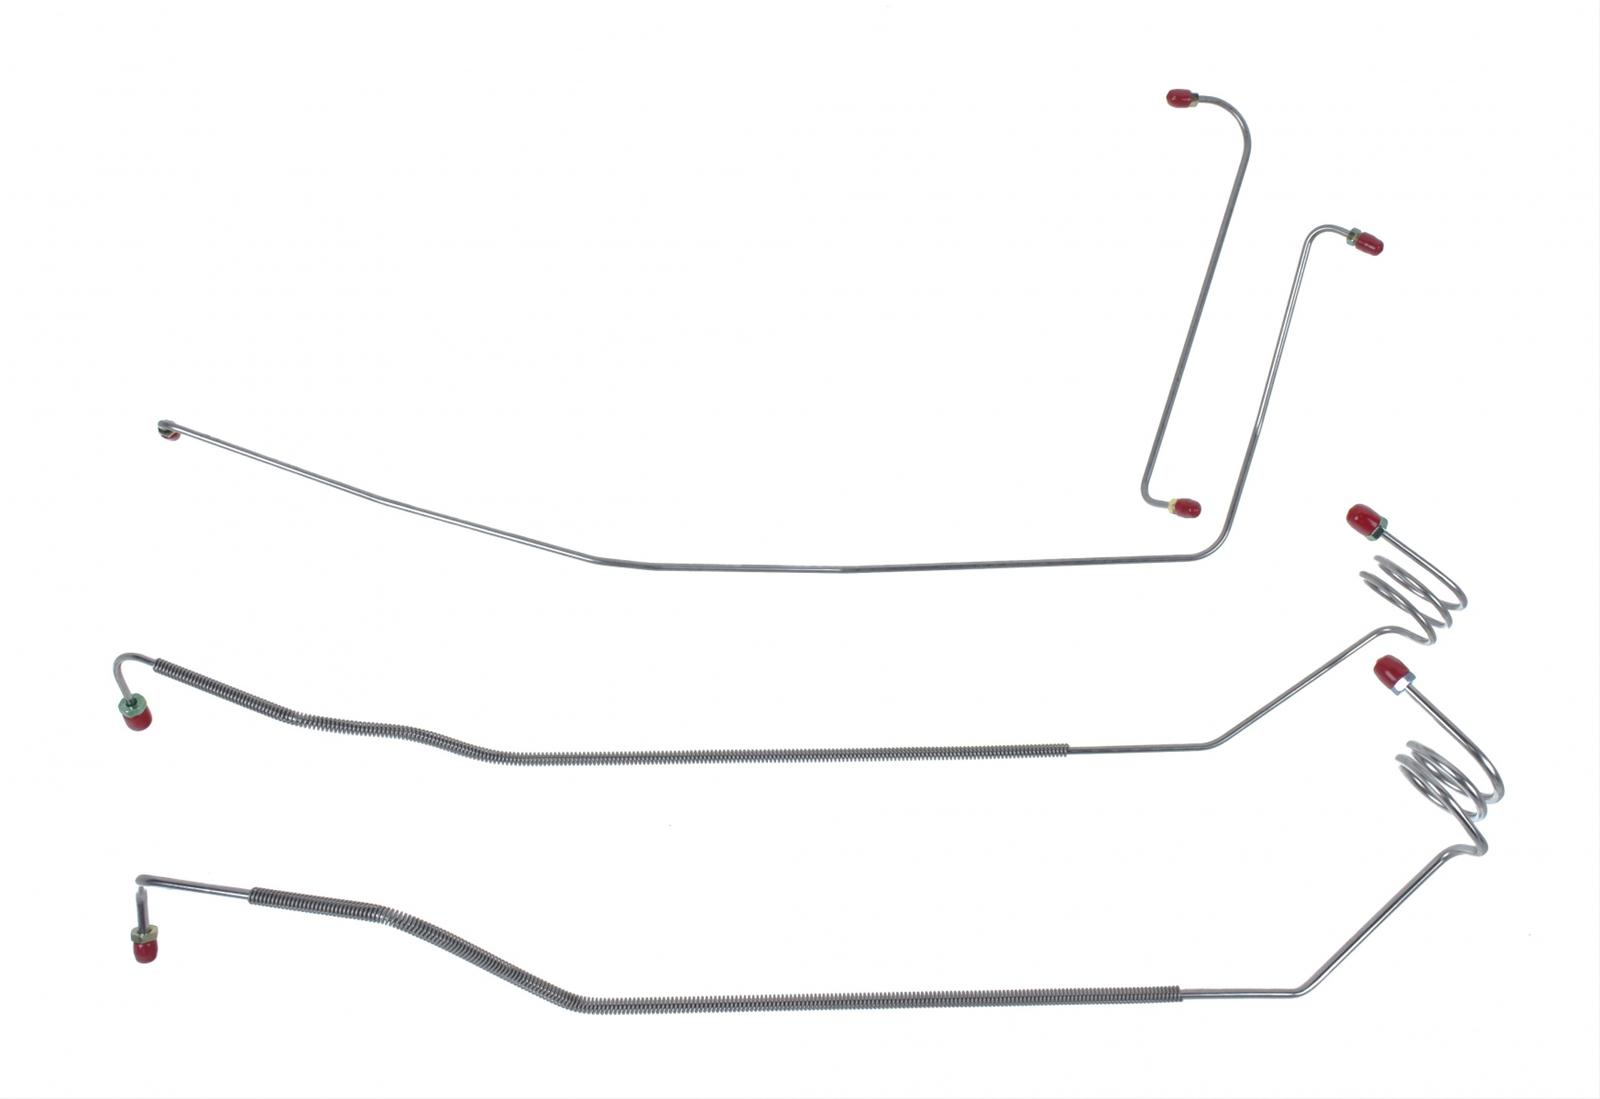 2001 gmc sierra abs brake lines diagram